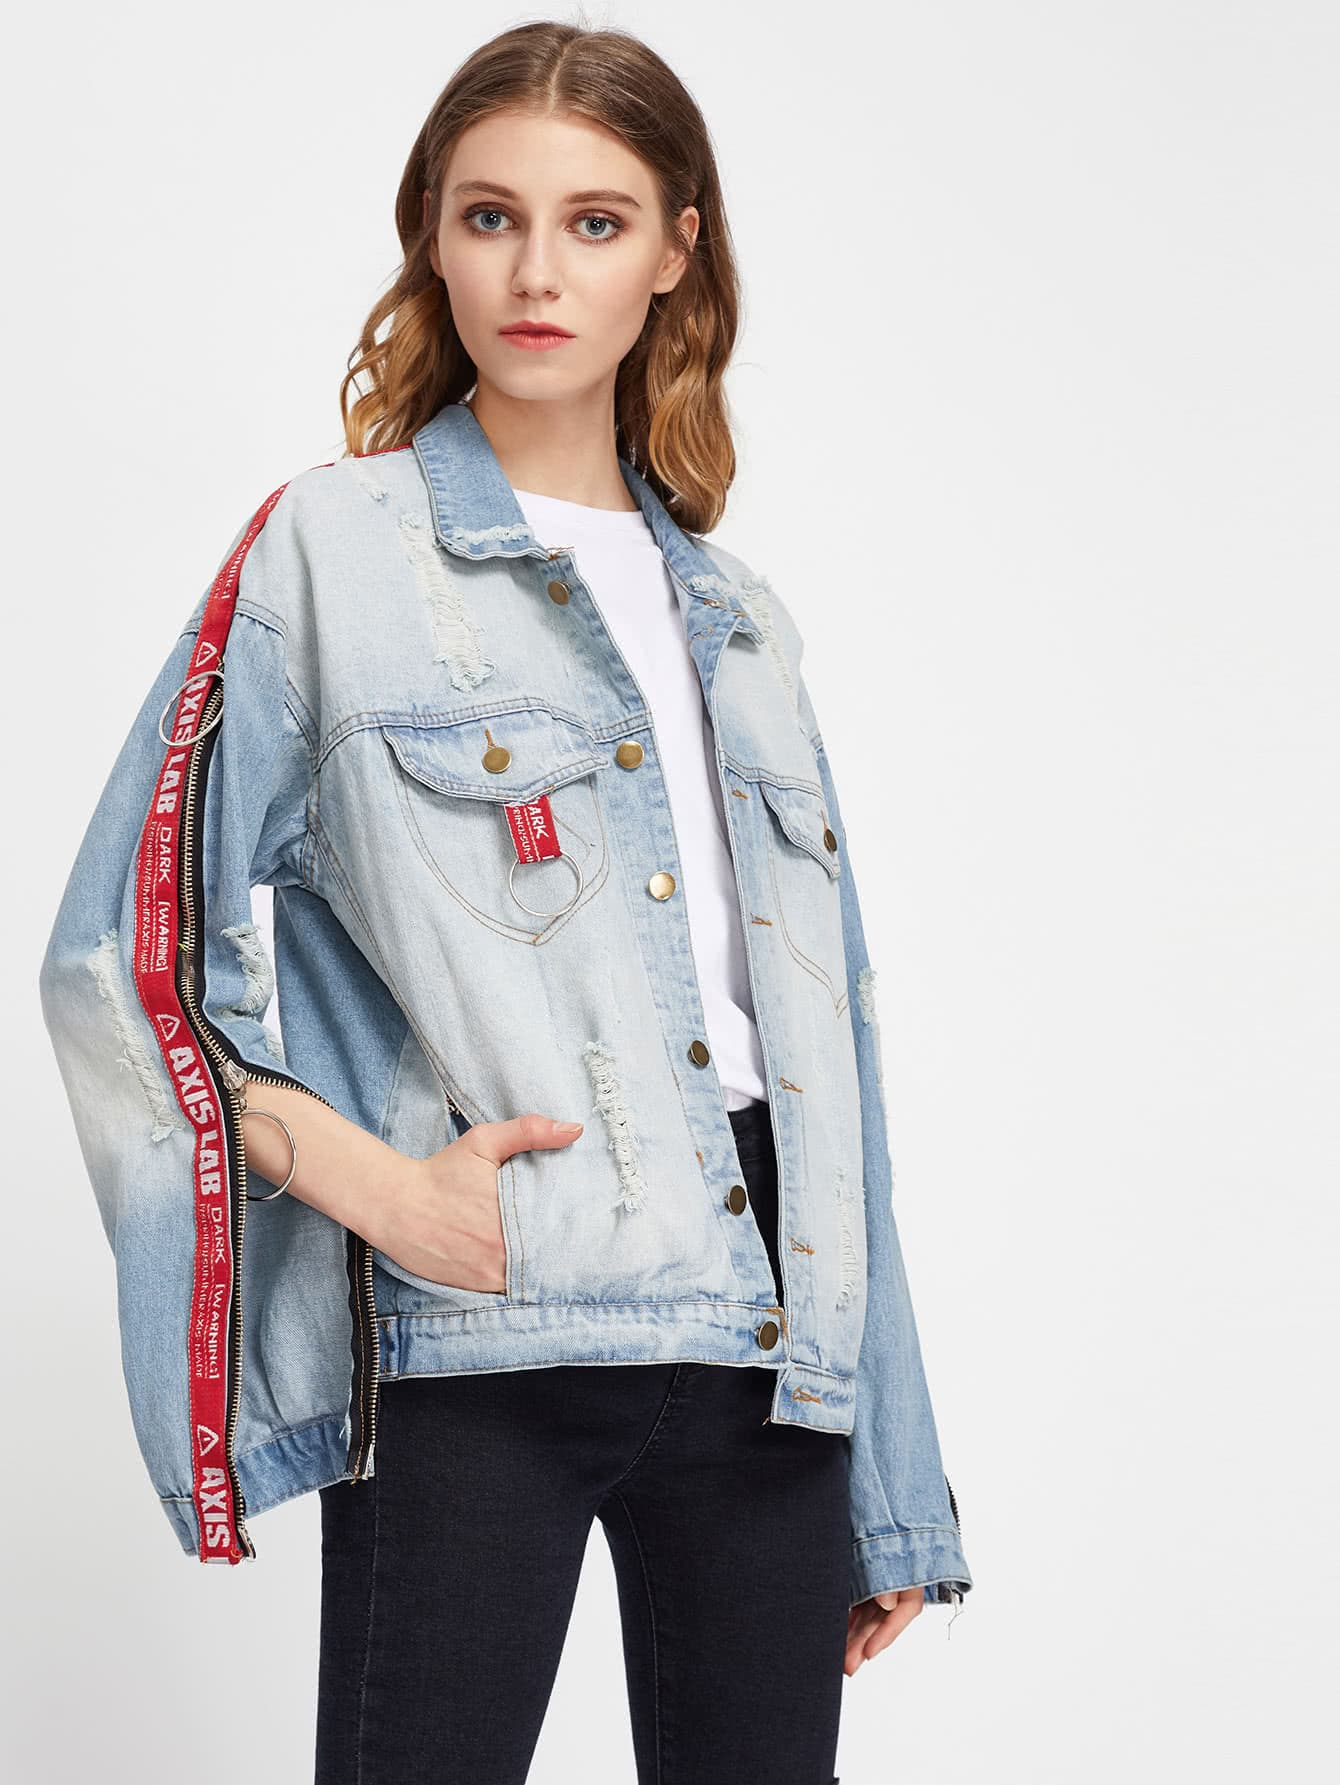 O-Ring Letter Tape Detail Zipper Ripped Denim Jacket ripped stitch detail denim jacket